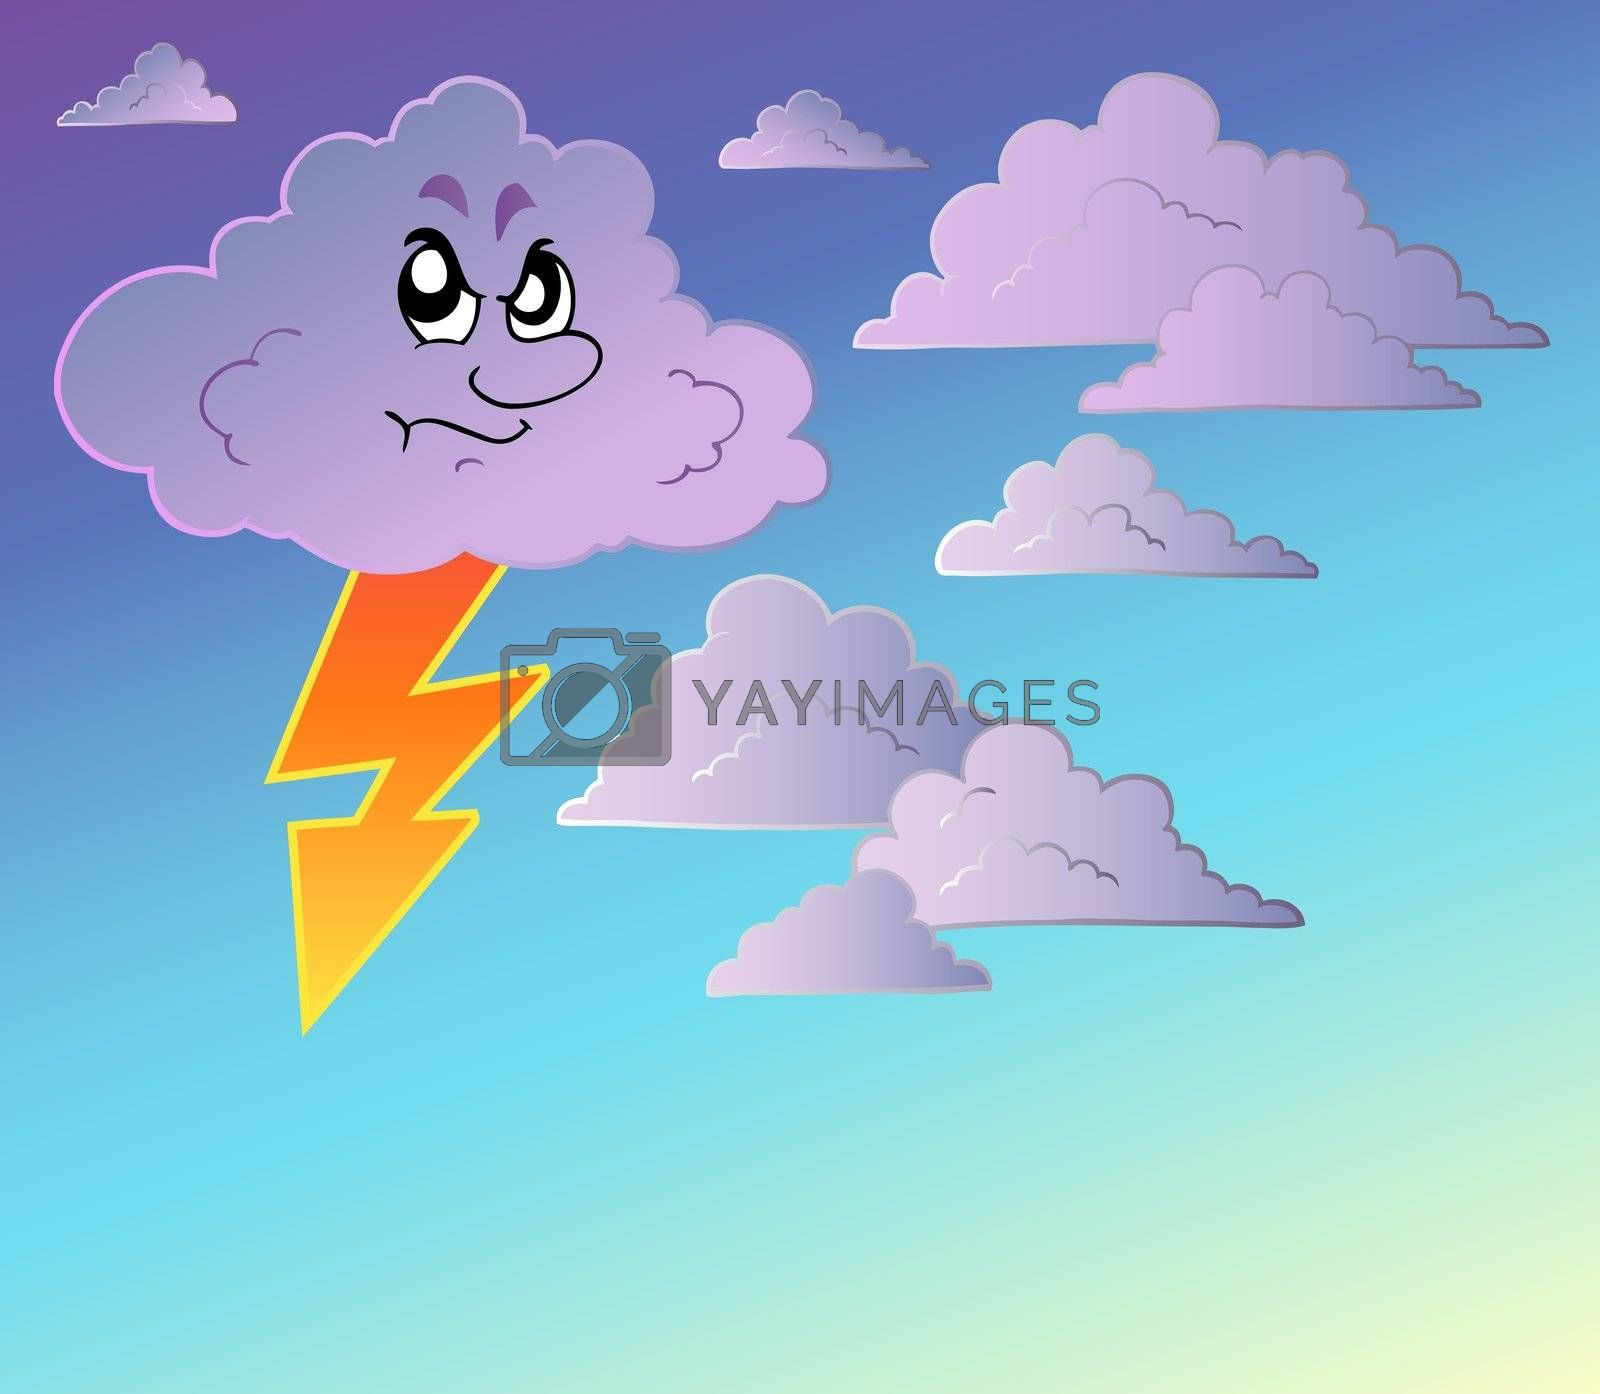 Stormy sky with cartoon clouds - vector illustration.